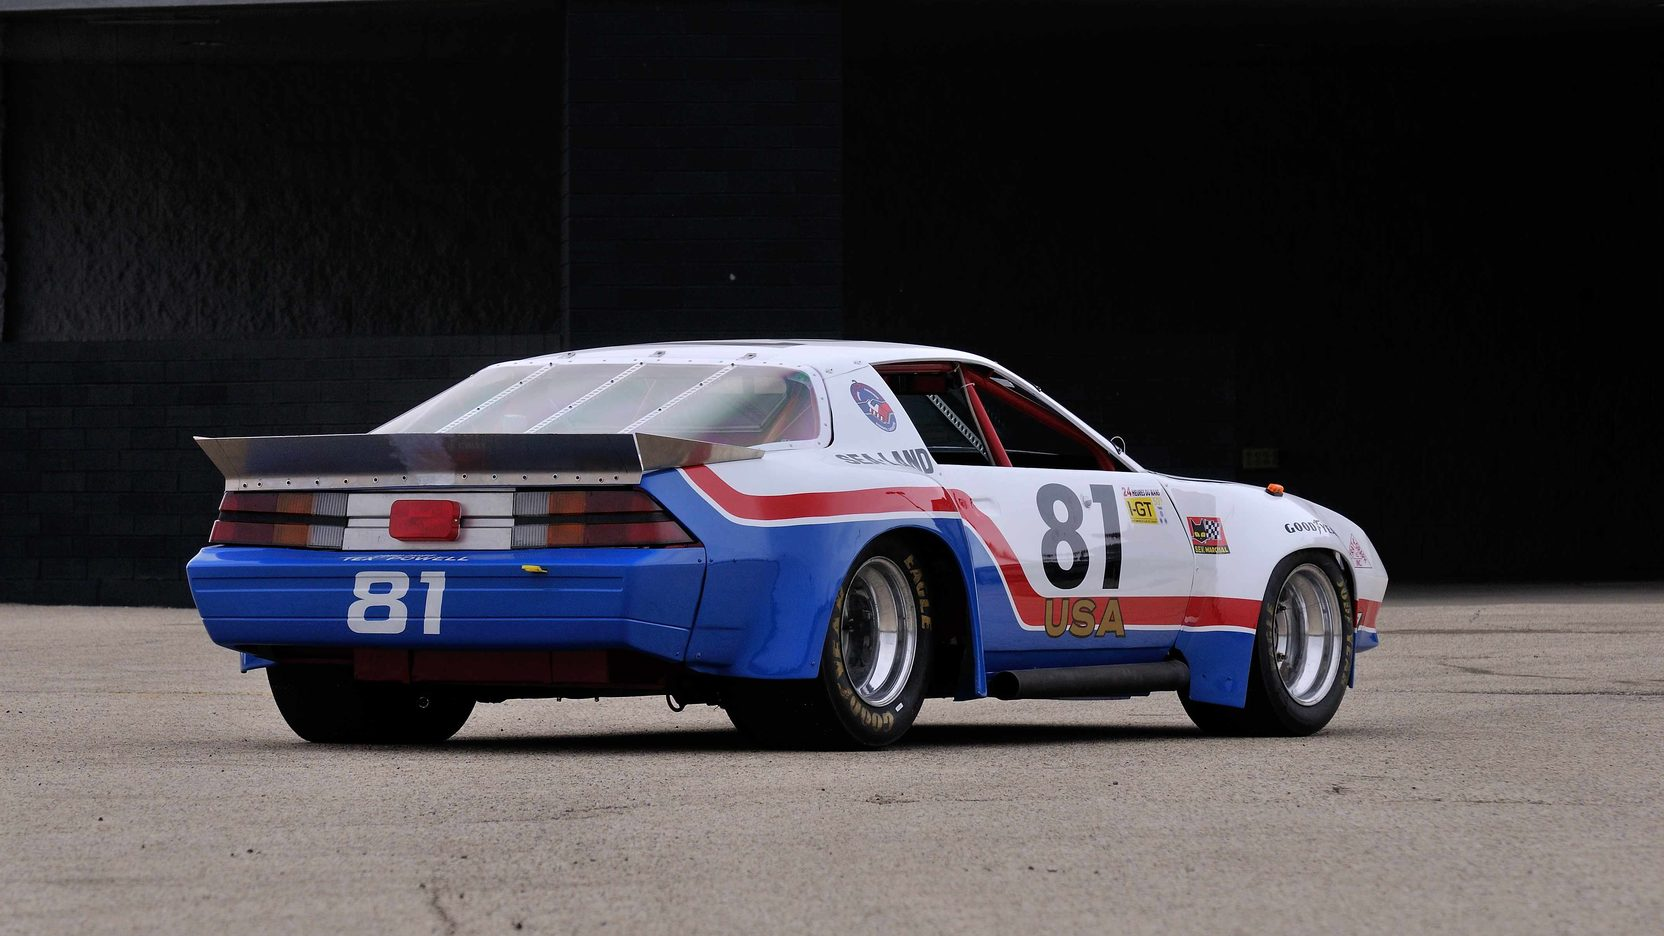 1982 Chevrolet Camaro Le Mans Race Car rear 3/4